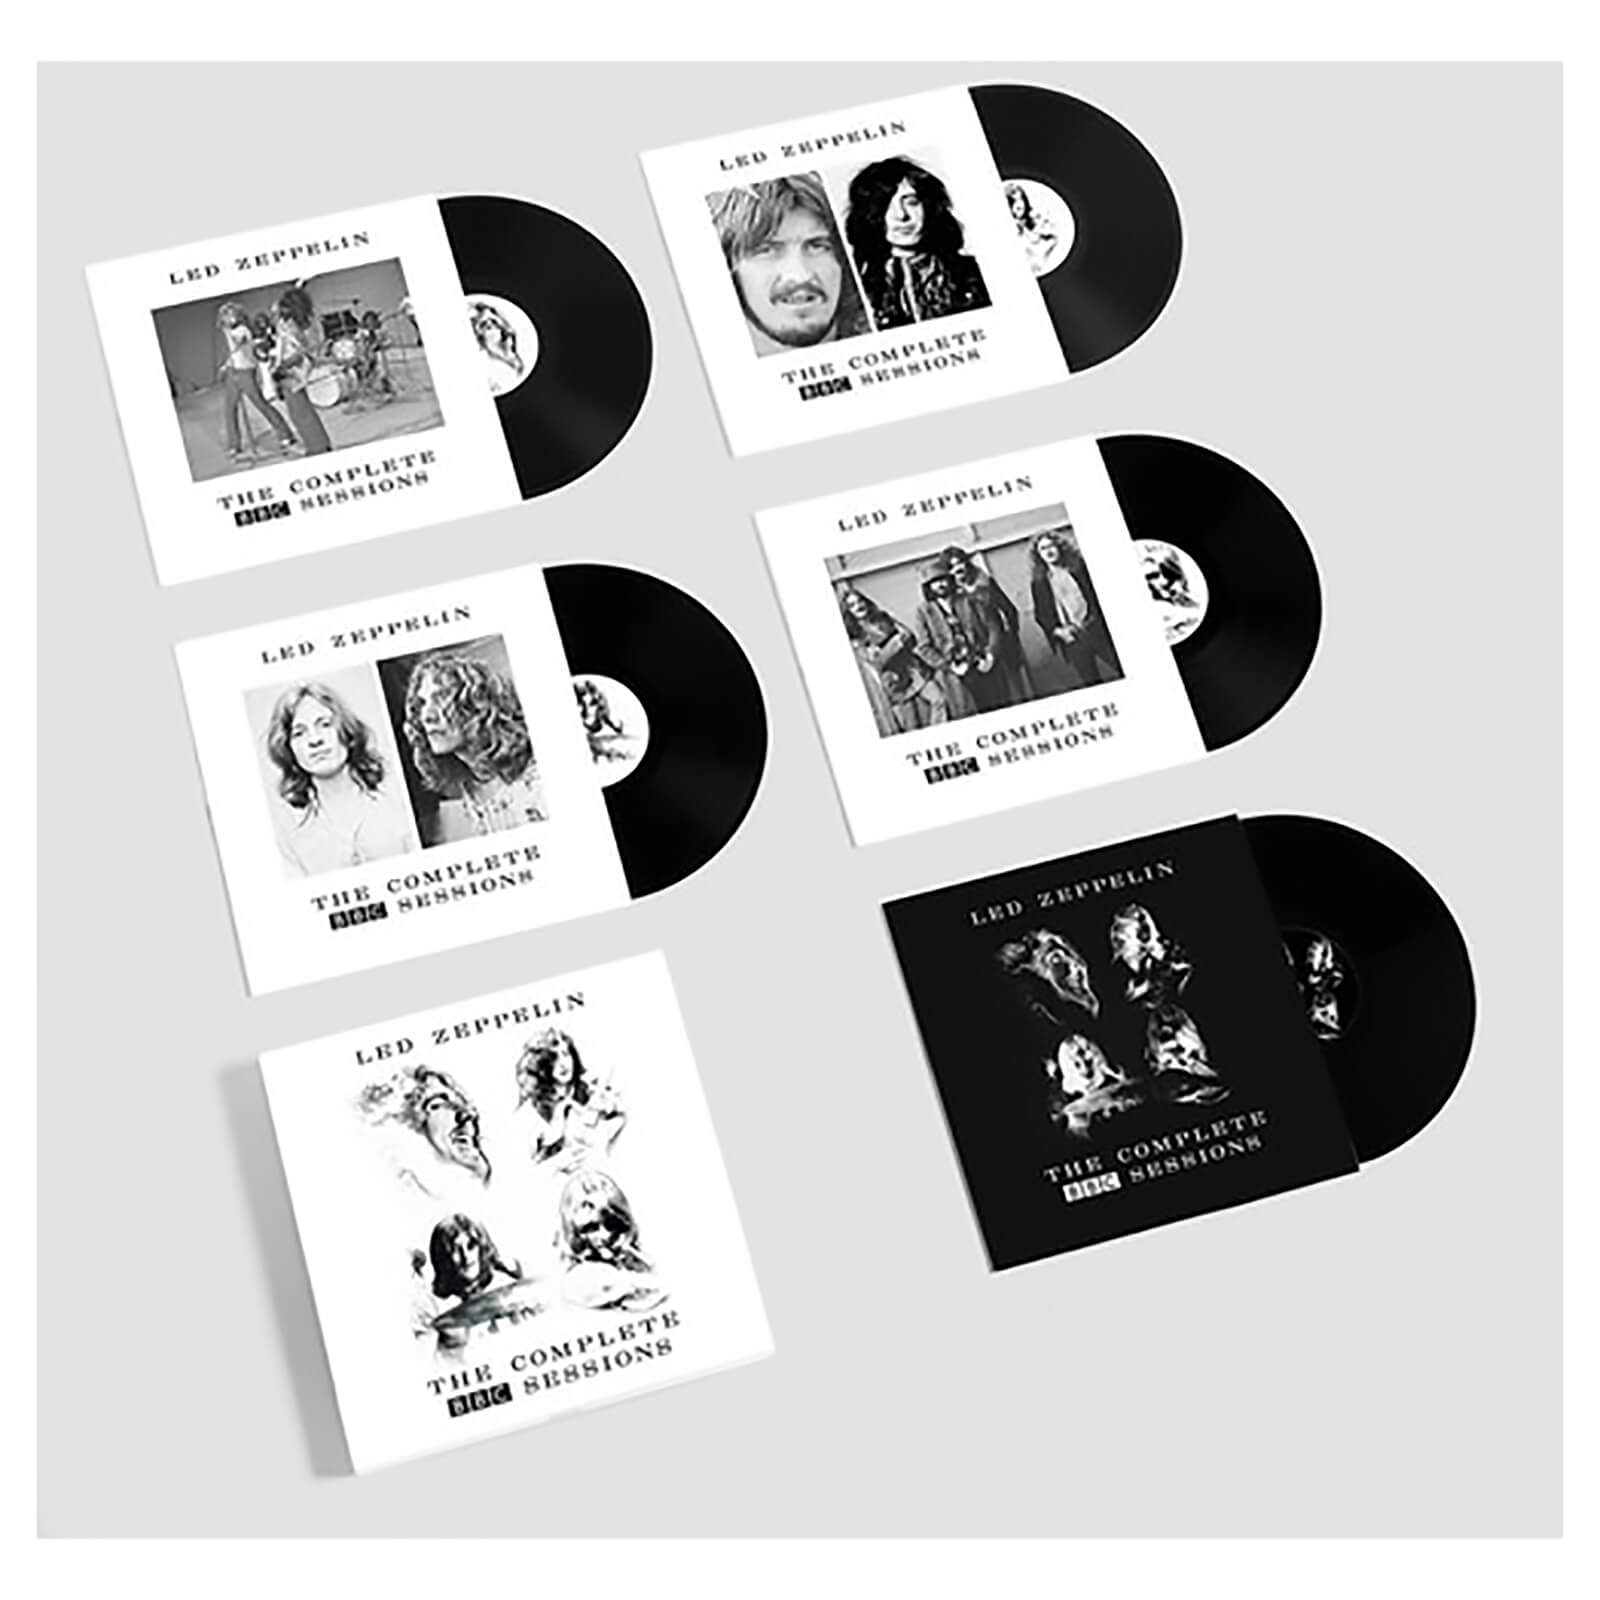 Led Zeppelin - Complete Bbc Sessions - Vinyl